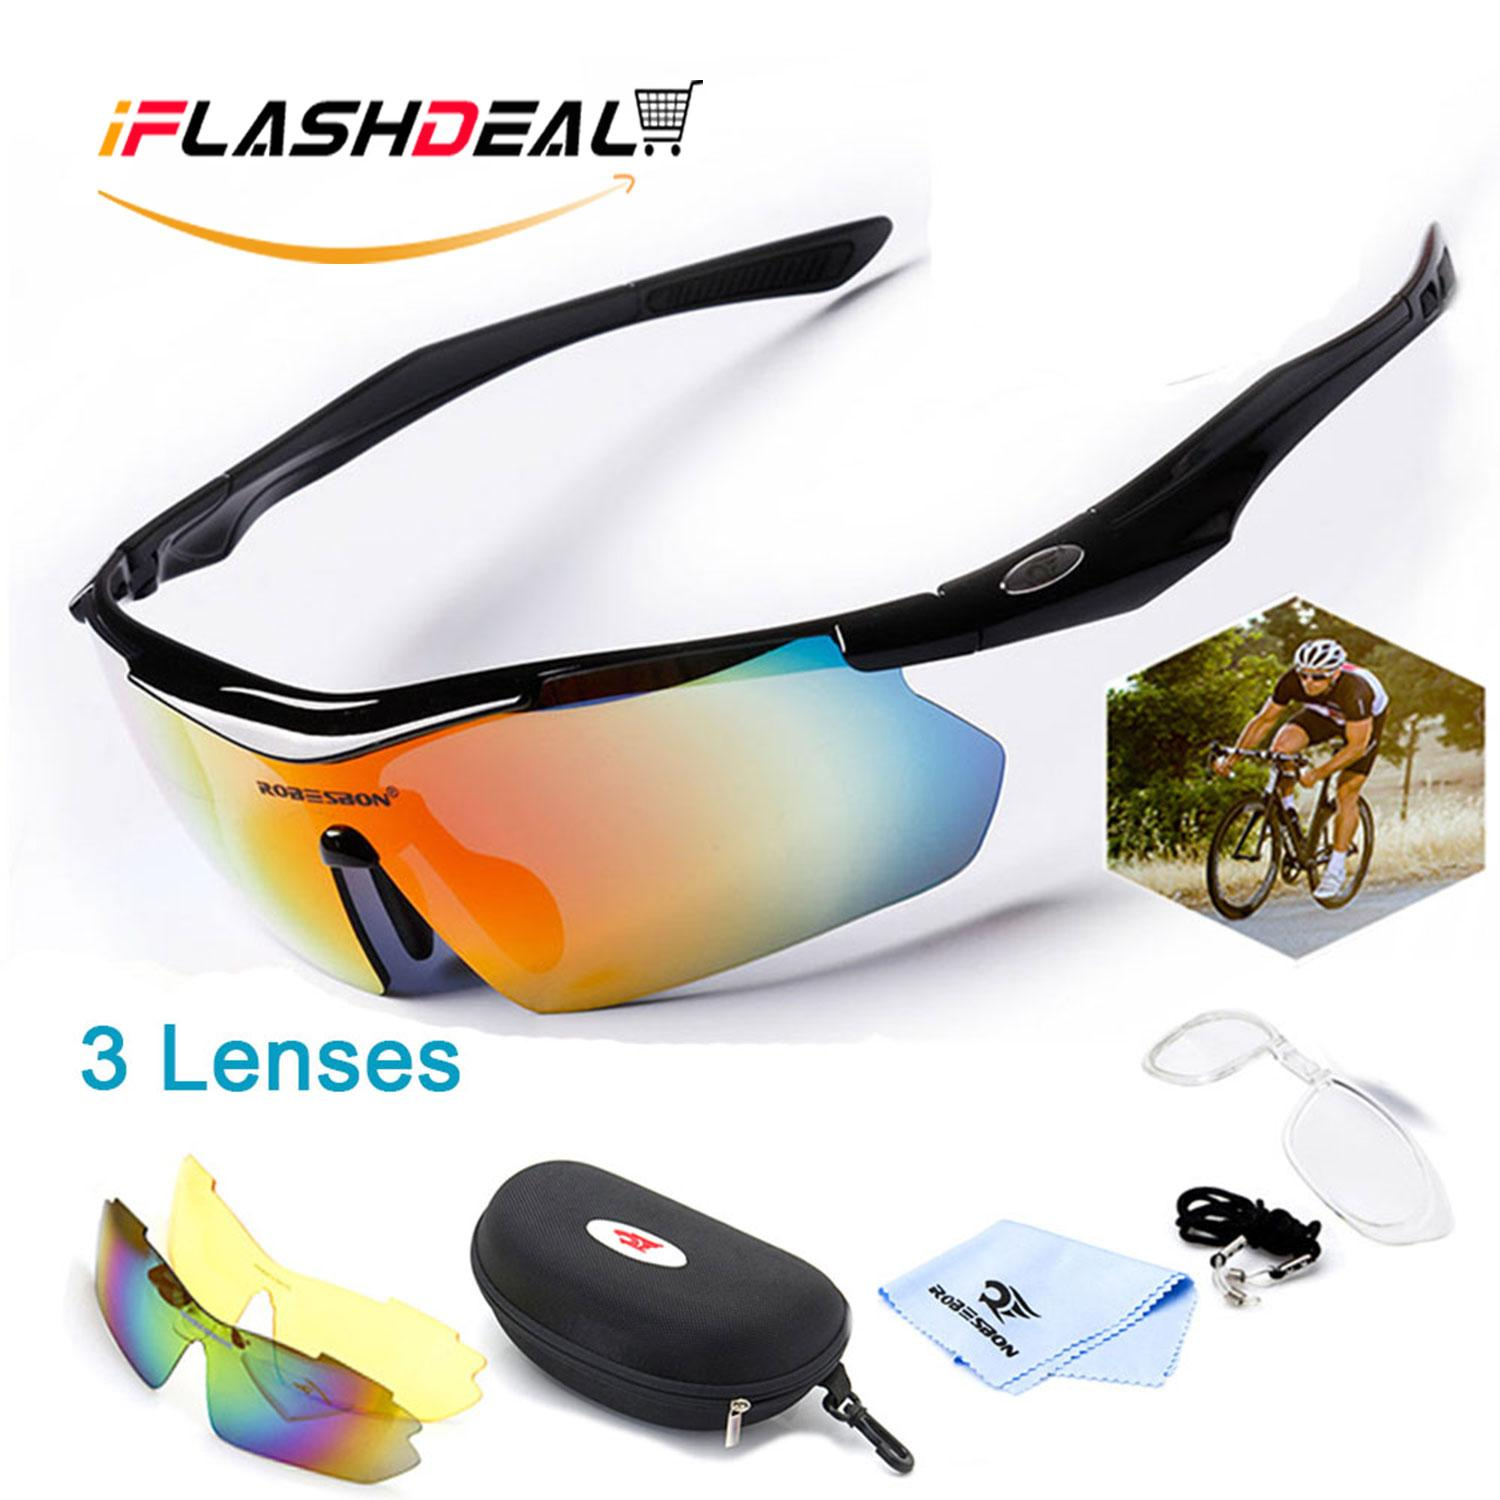 Iflashdeal Men Sports Sunglasses Outdoor Sport Driving Male Women Sun Glasses Cycling Riding Running Glasses With 3 Interchangeable Lenses By Iflashdeal.